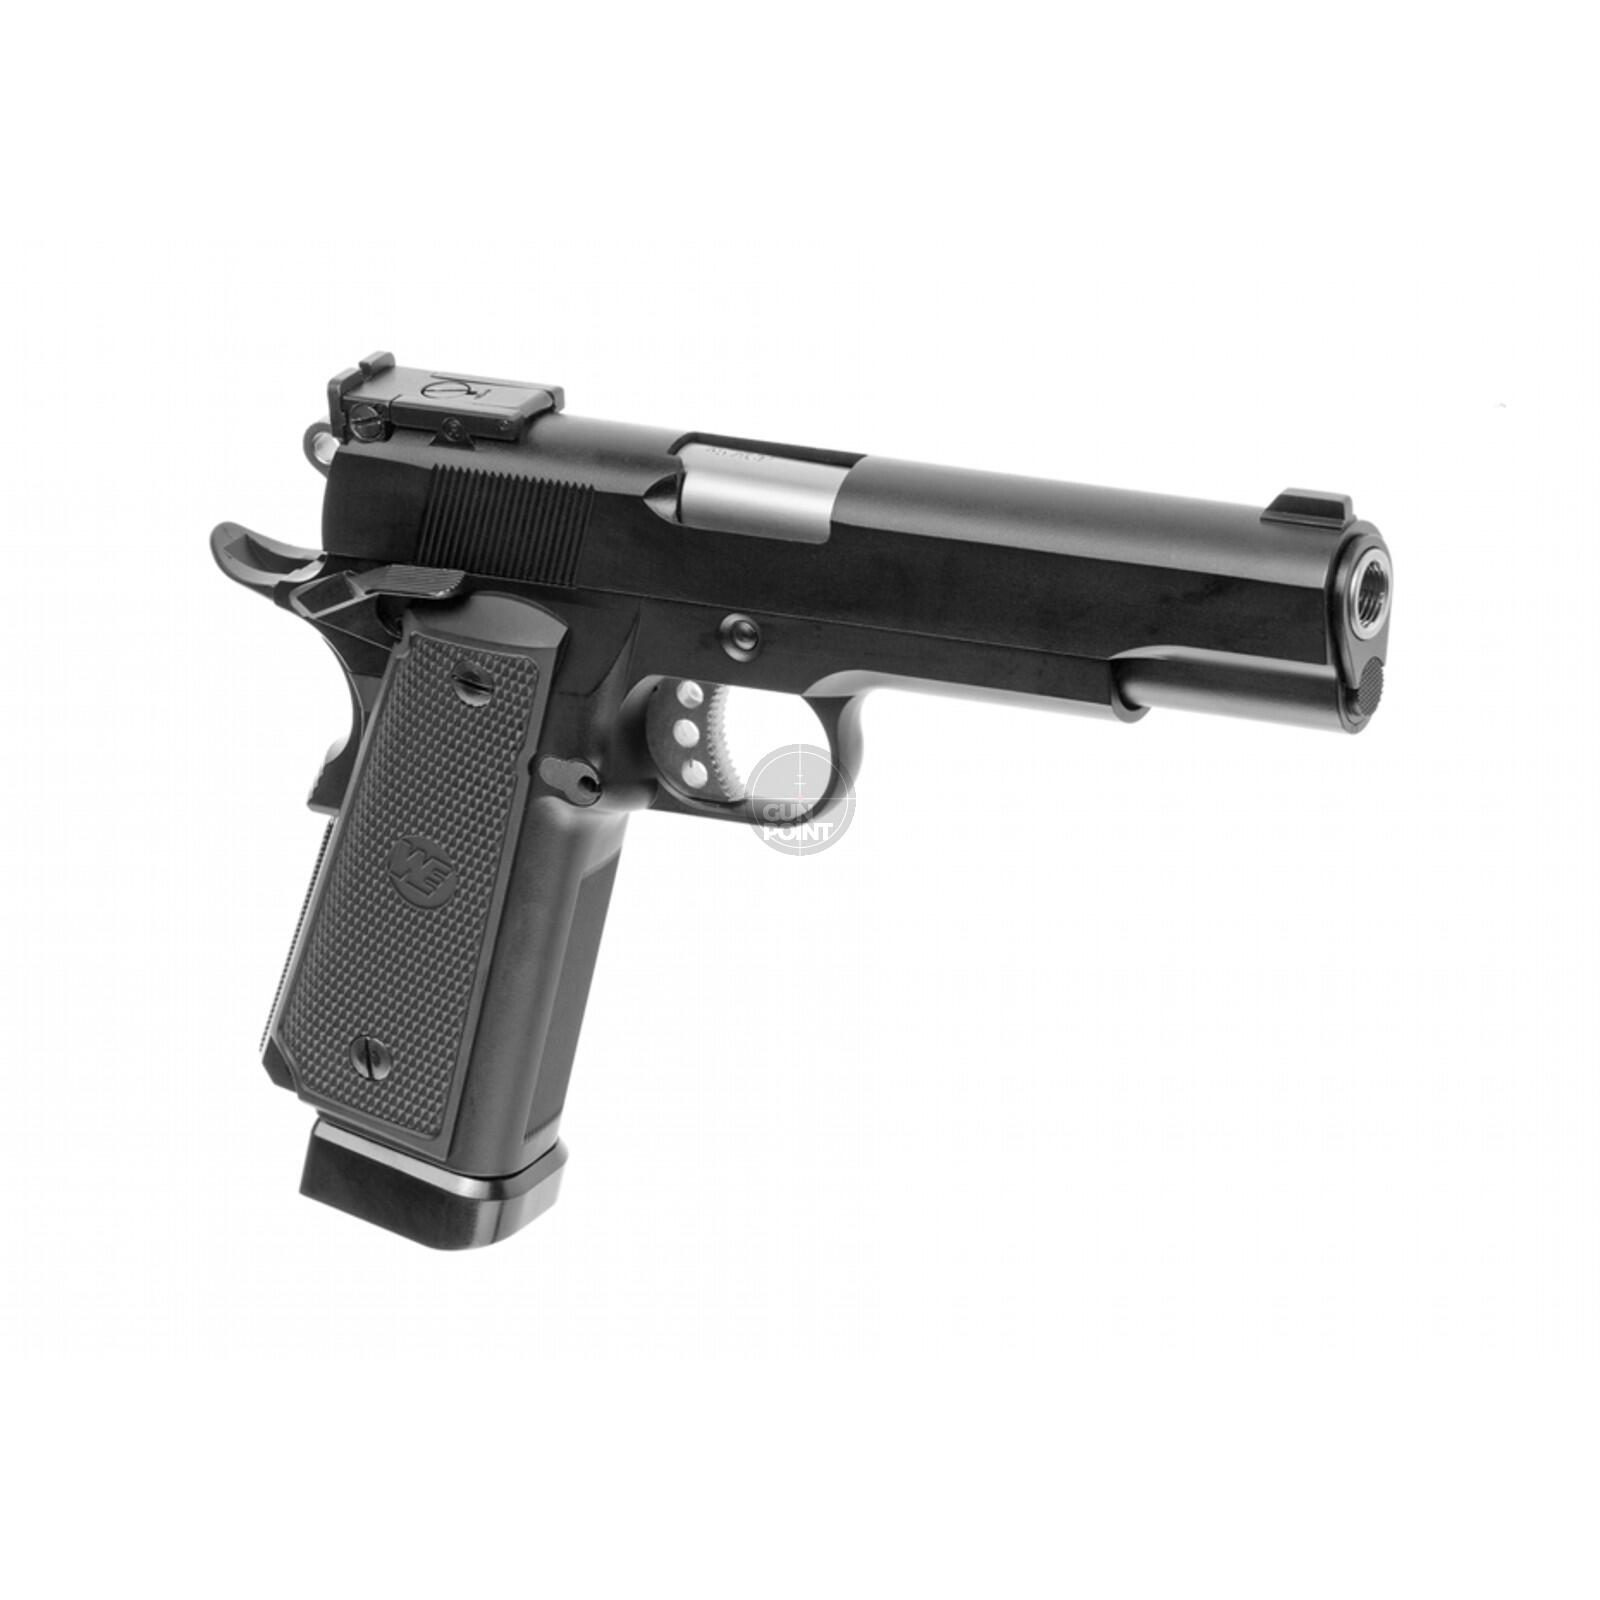 Softair - Pistole - WE - M1911 A1 Tactical Full Metal Co2 GBB - ab 18, über 0,5 Joule